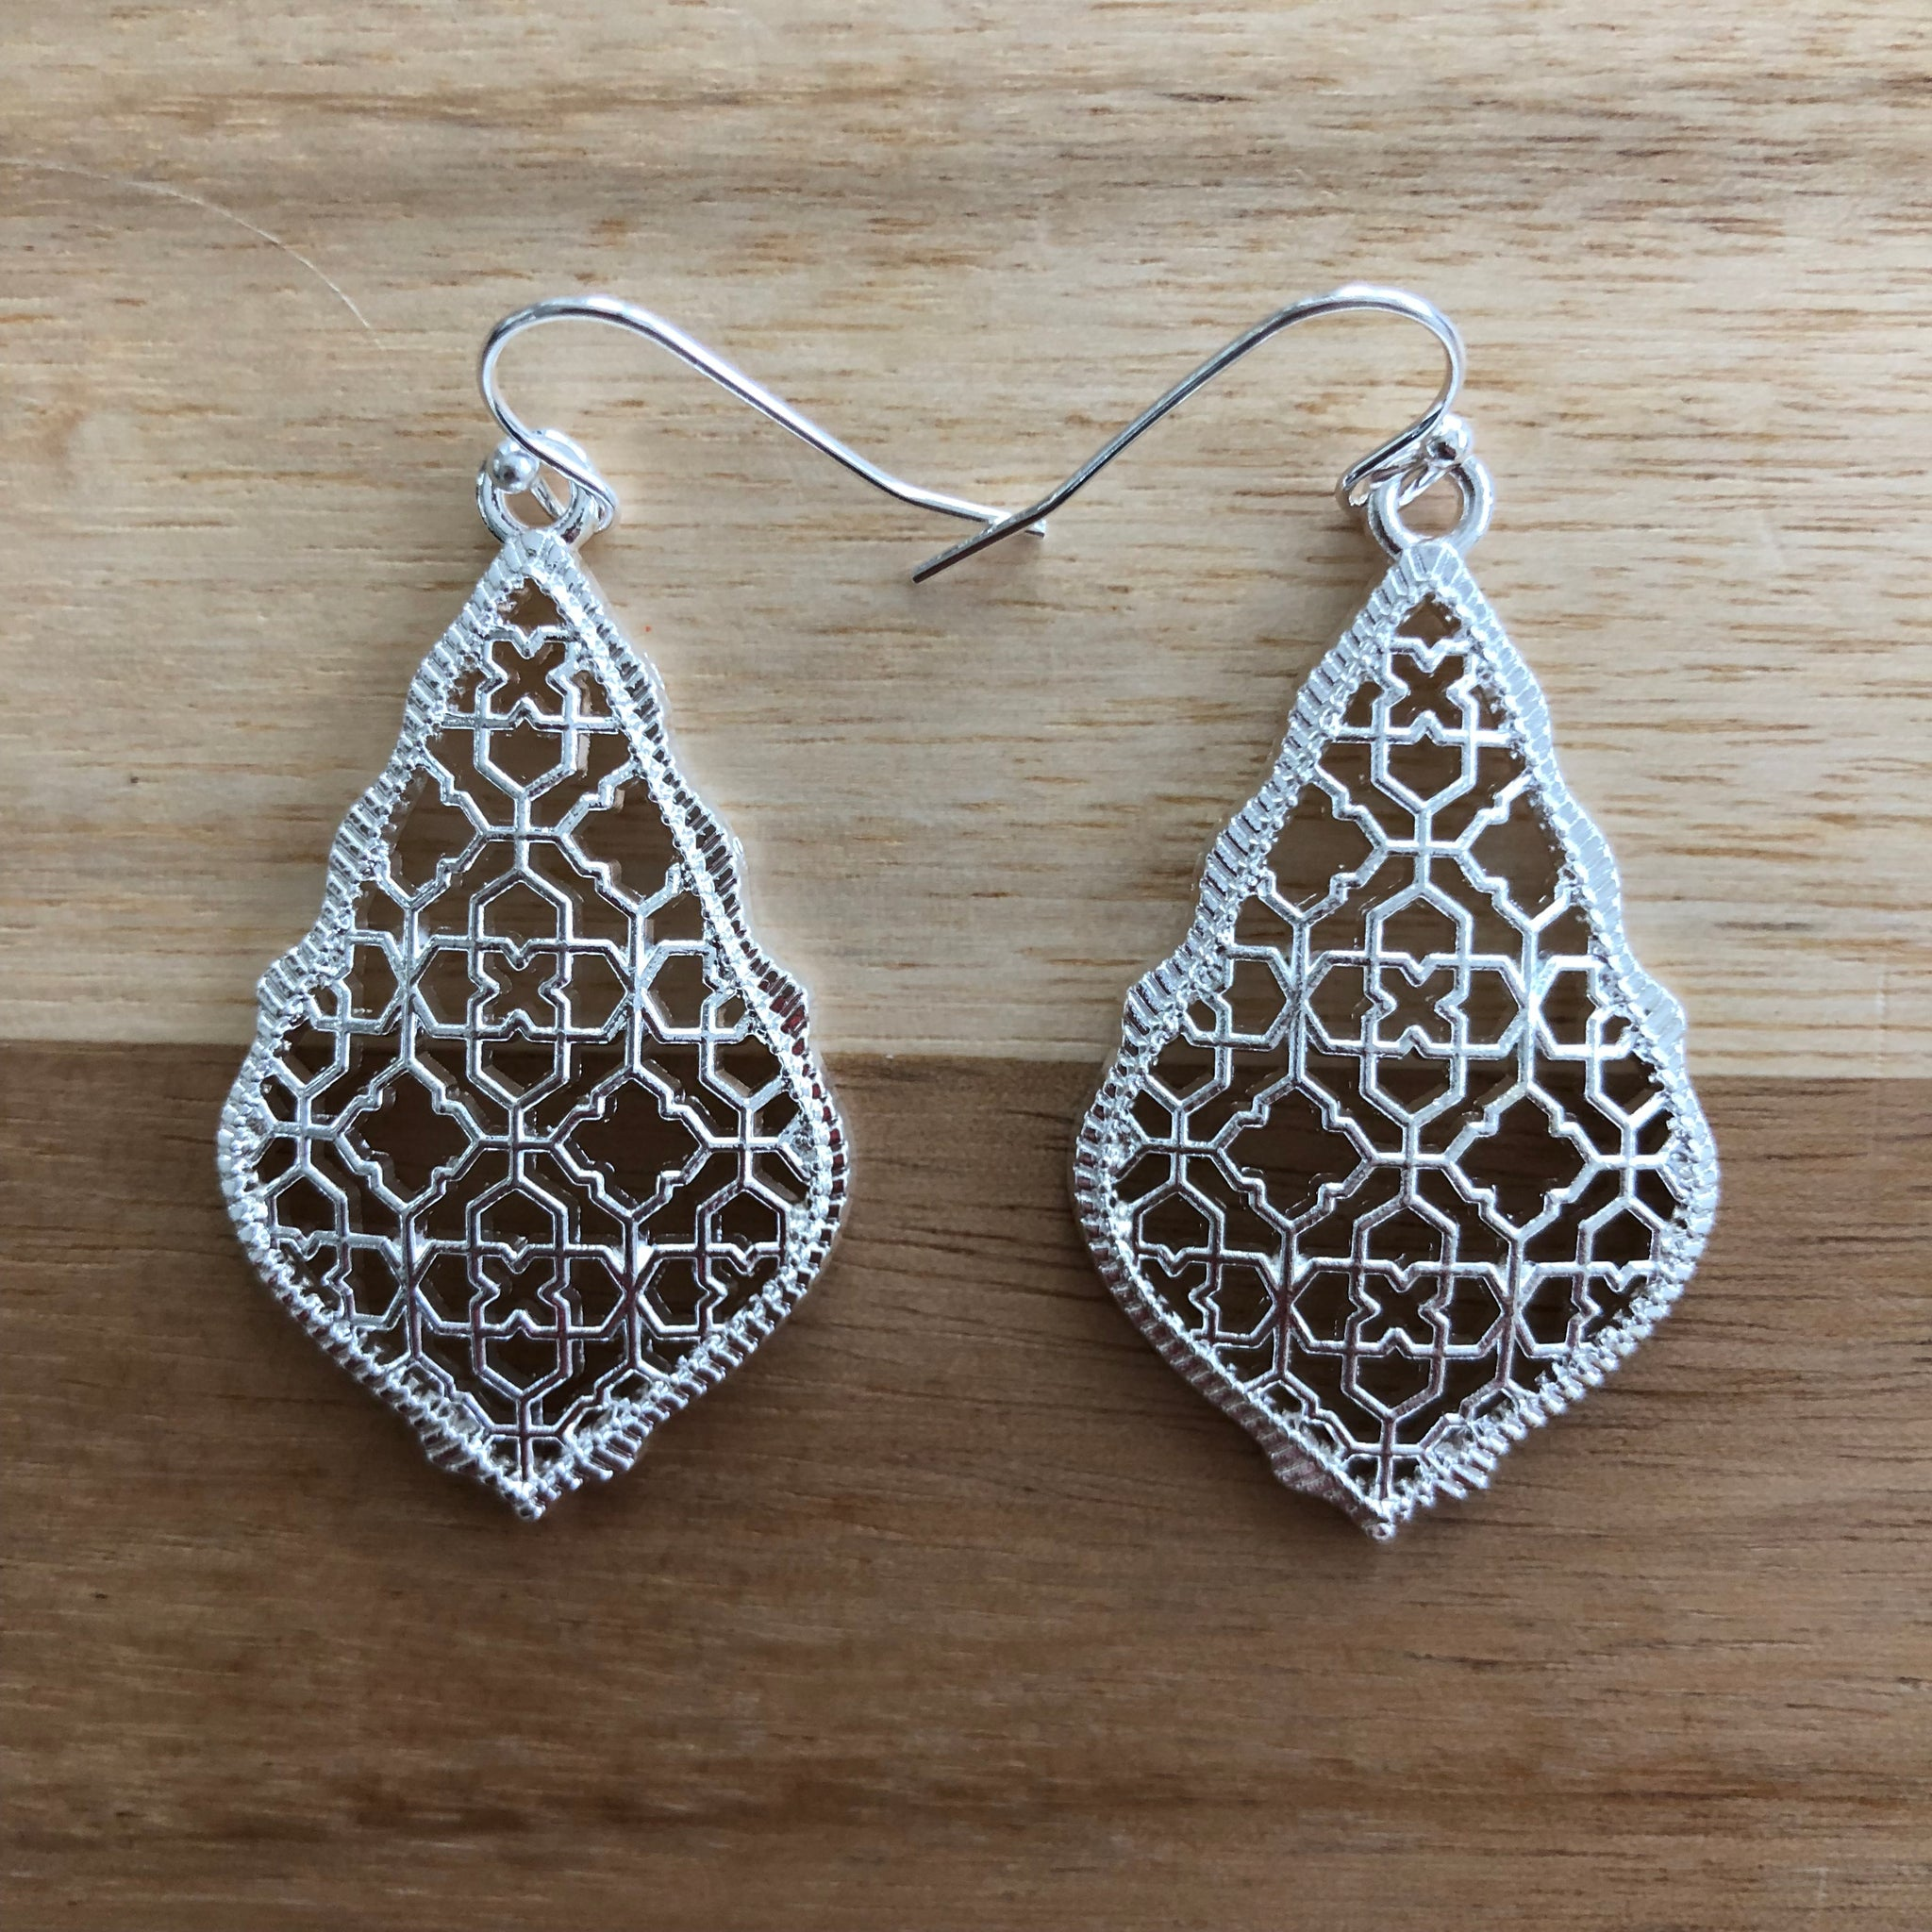 Silver Tear Drop Metal Cutout Earrings